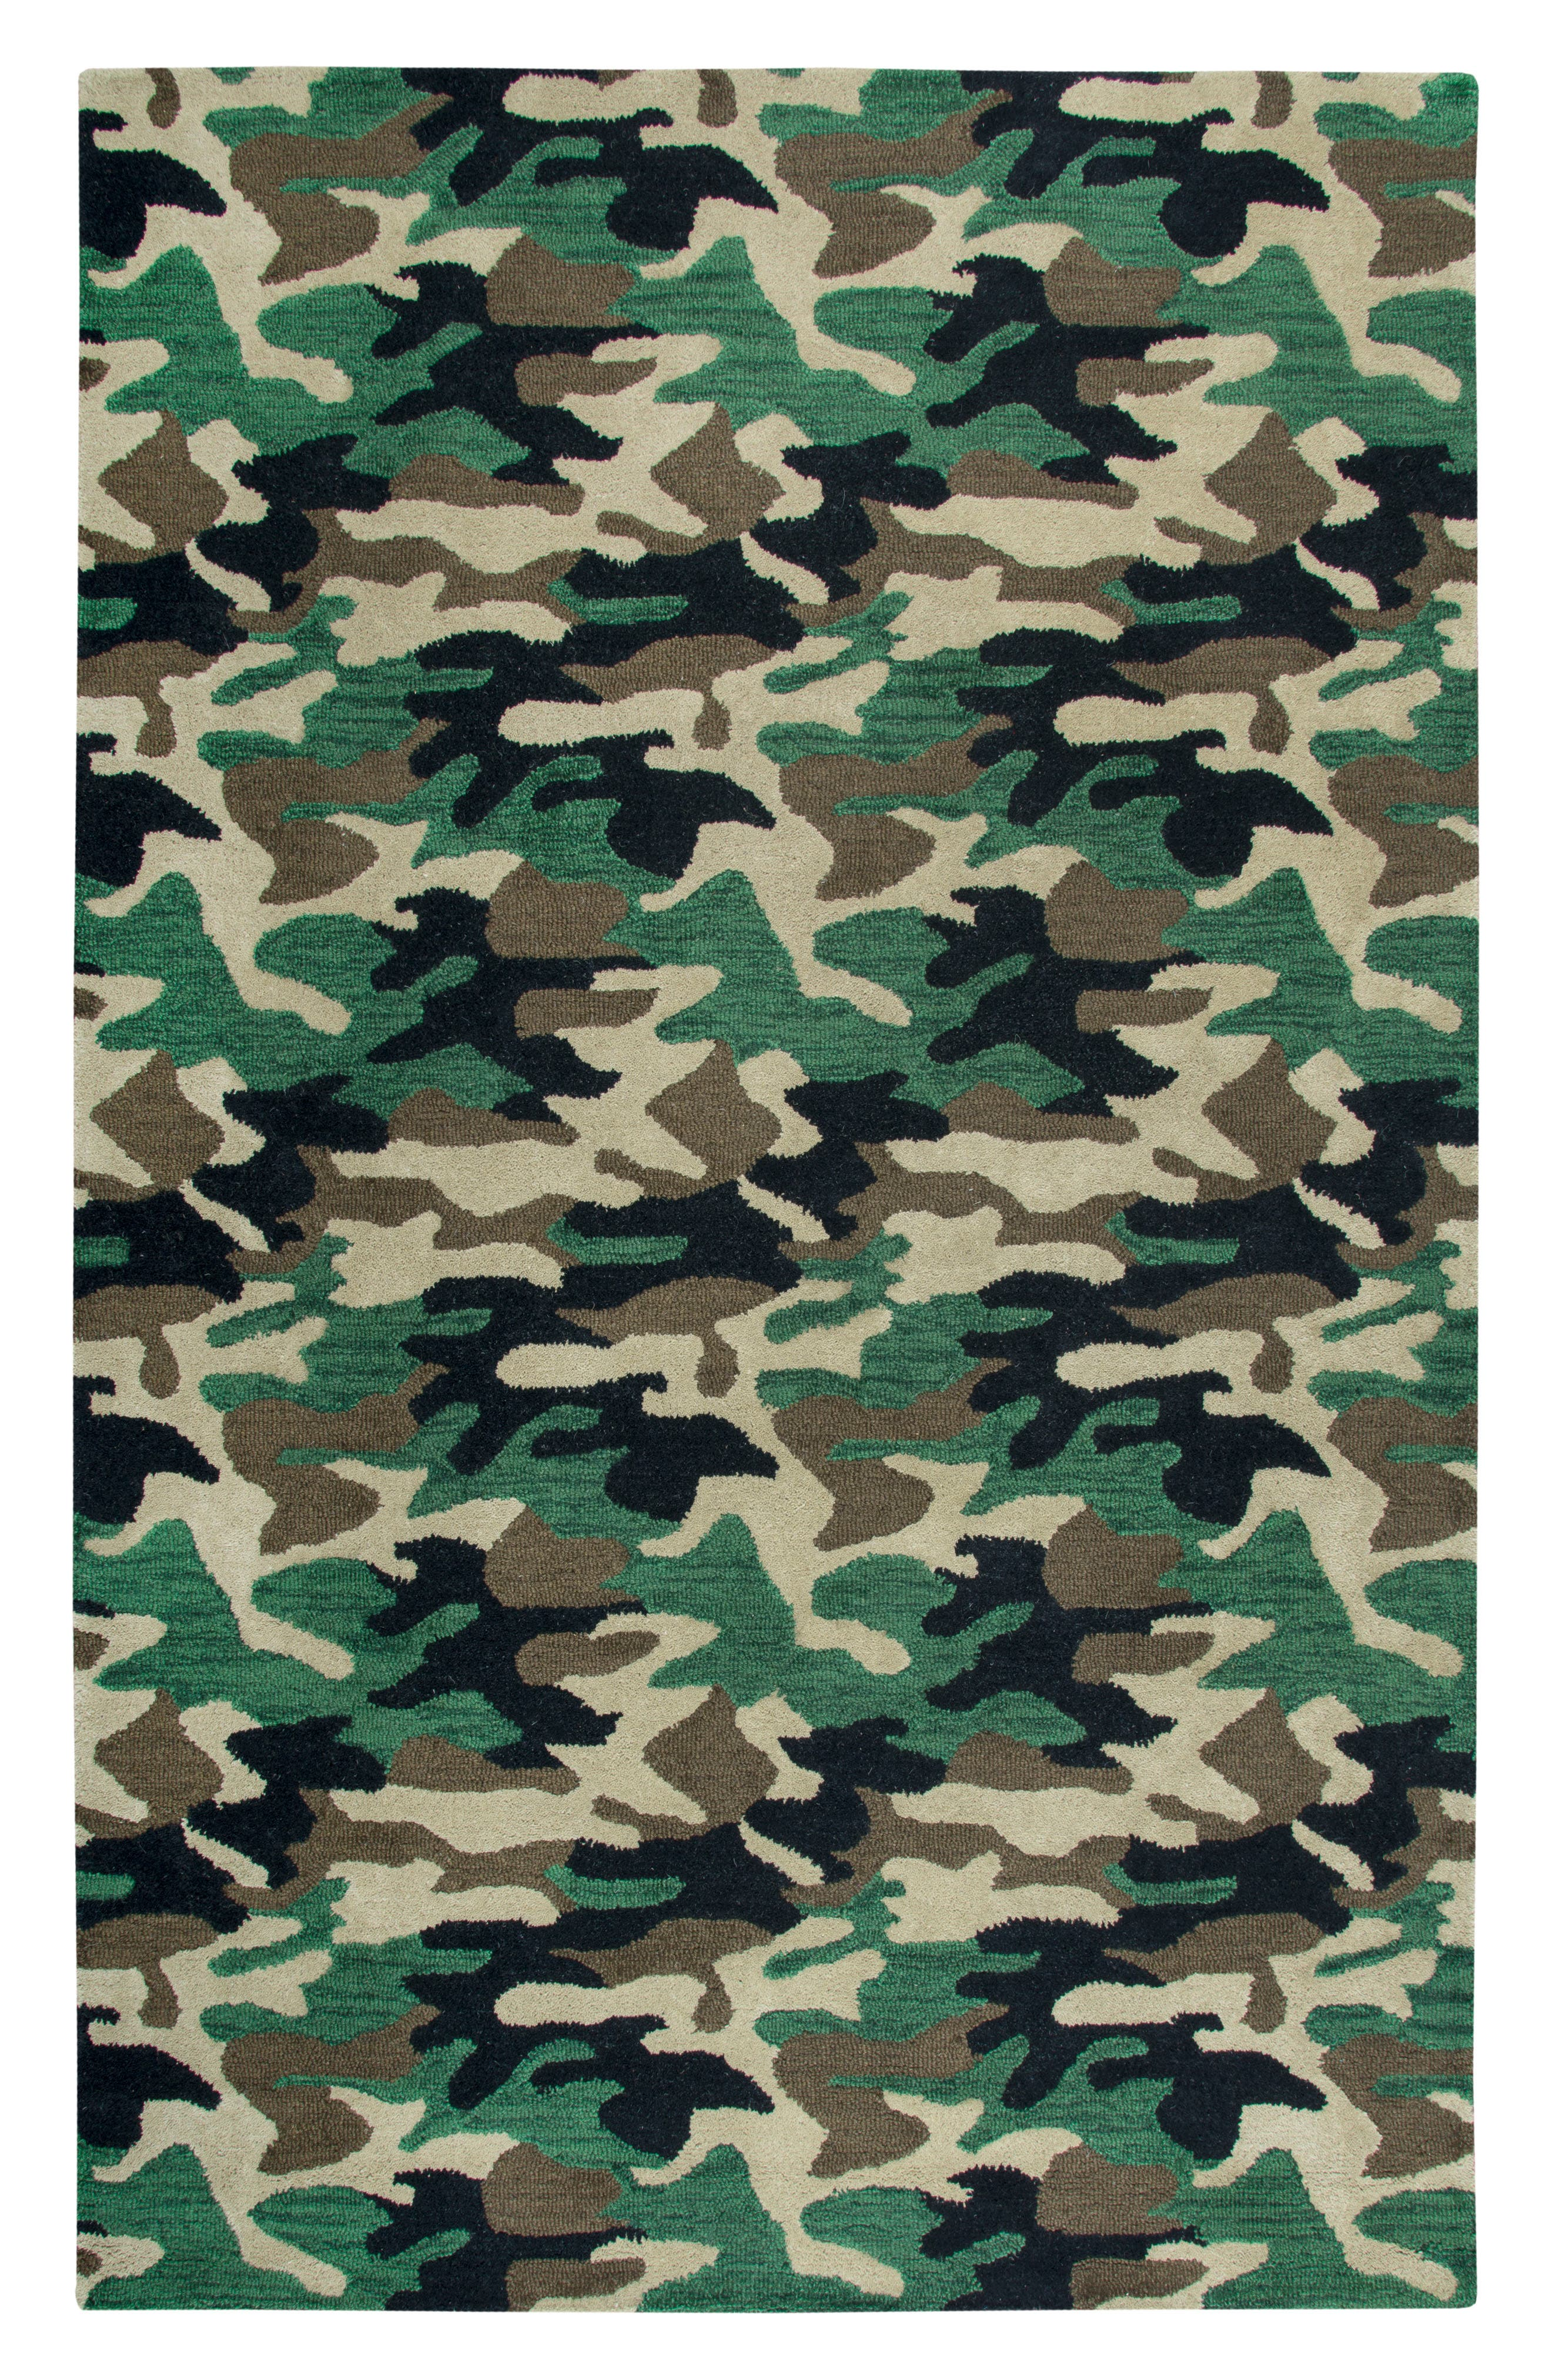 Play Day Camouflage Rug,                             Main thumbnail 1, color,                             Green